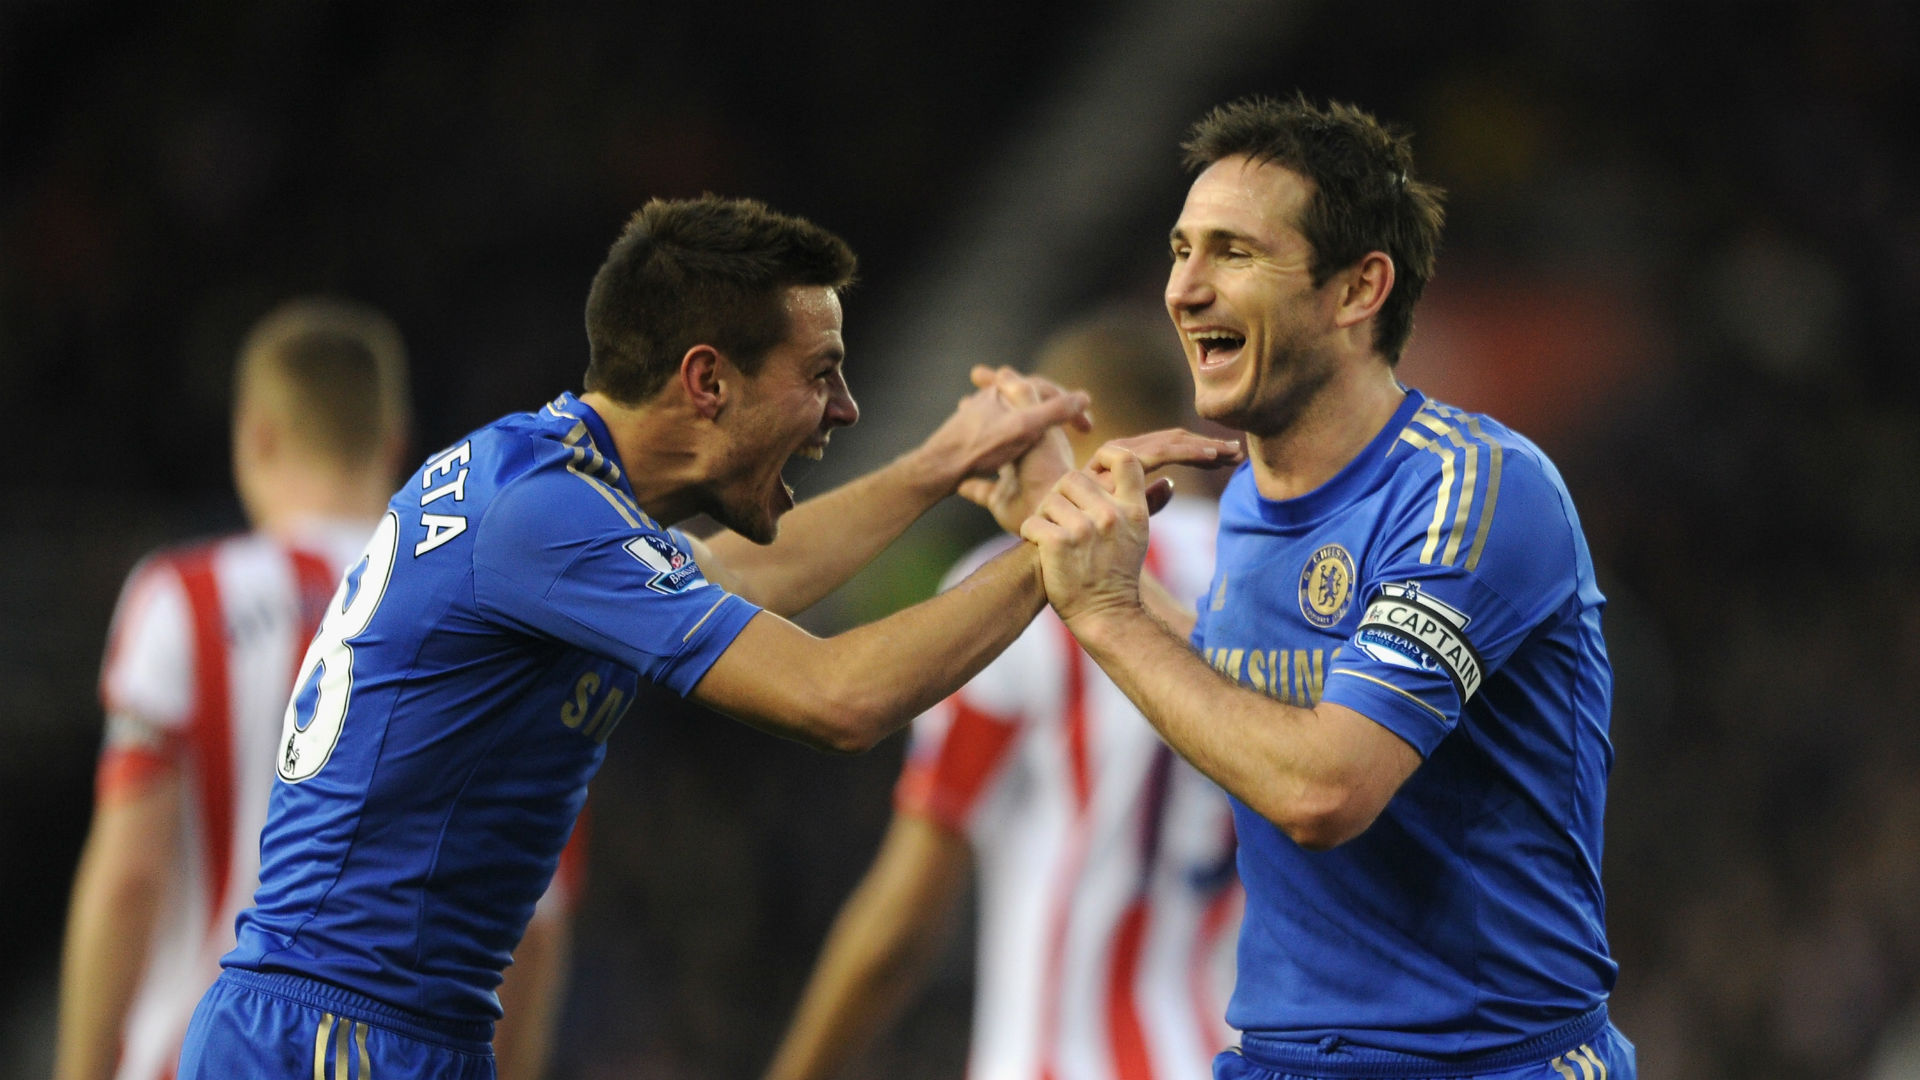 Lampard has reunited Chelsea and their fans, says Azpilicueta